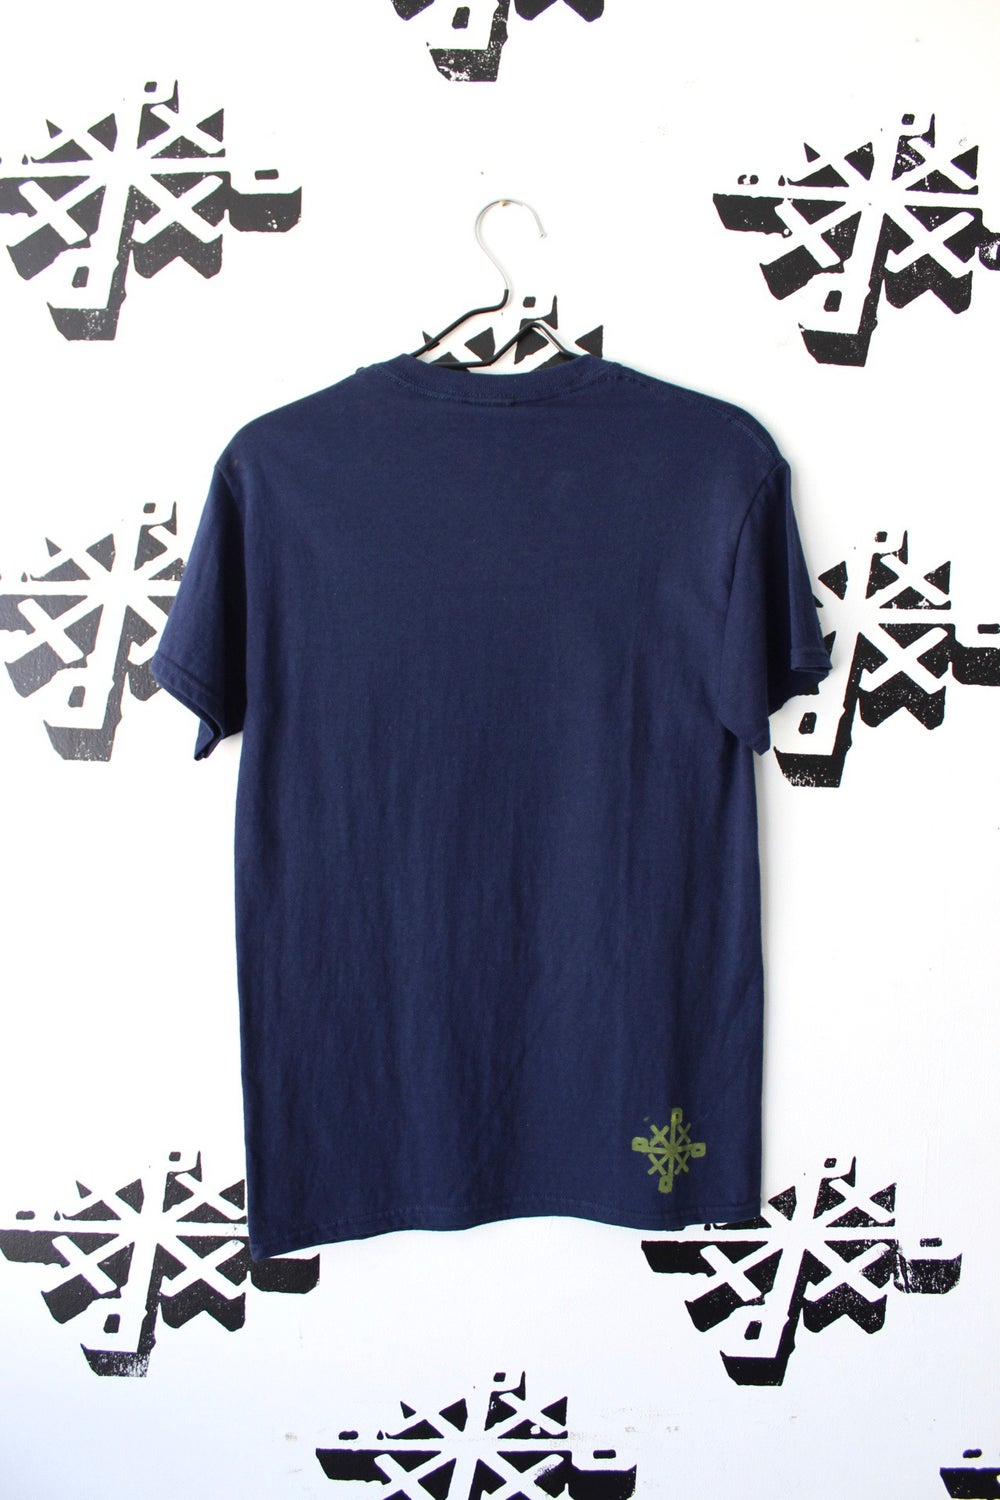 get in there tee in navy blue